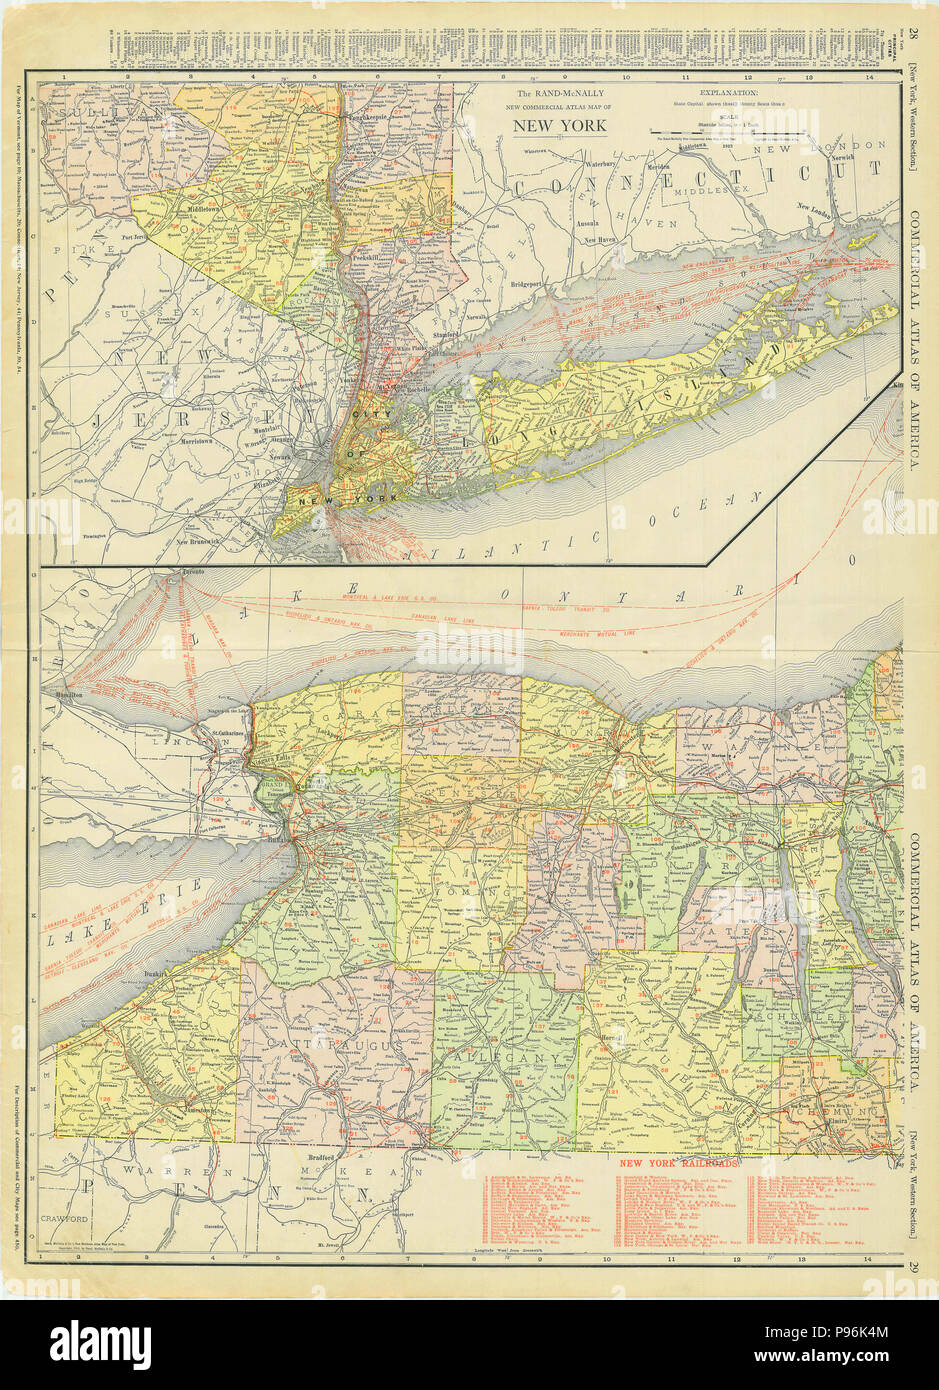 Map Of Southern New York.Western And Southern New York Long Island 1913 Stock Photo